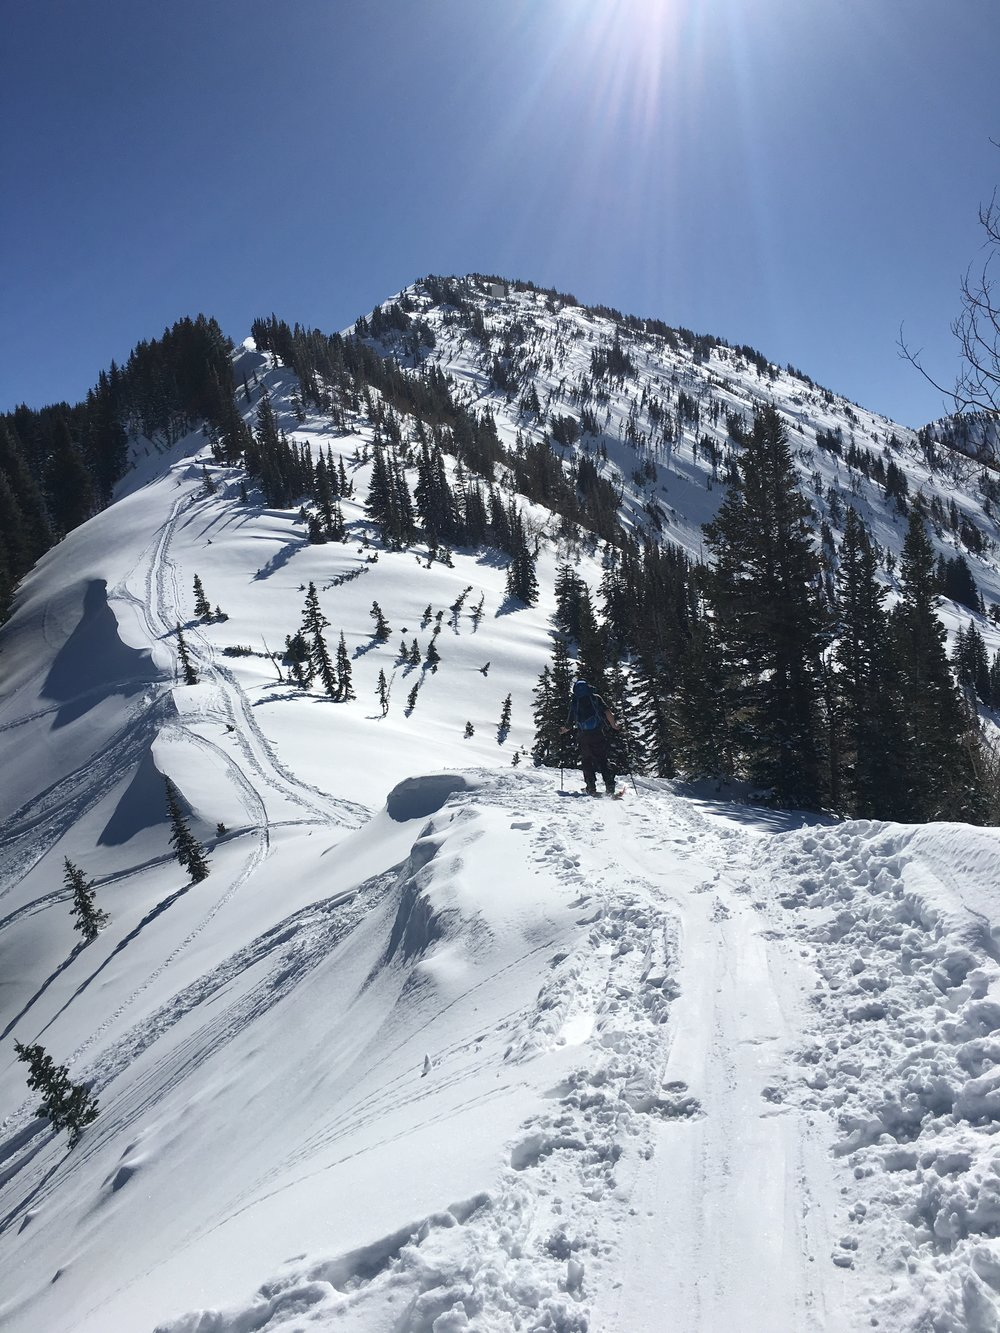 Photo: Patsy Marley Ridgeline by Zach Husted  Little Cottonwood Canyon, UT